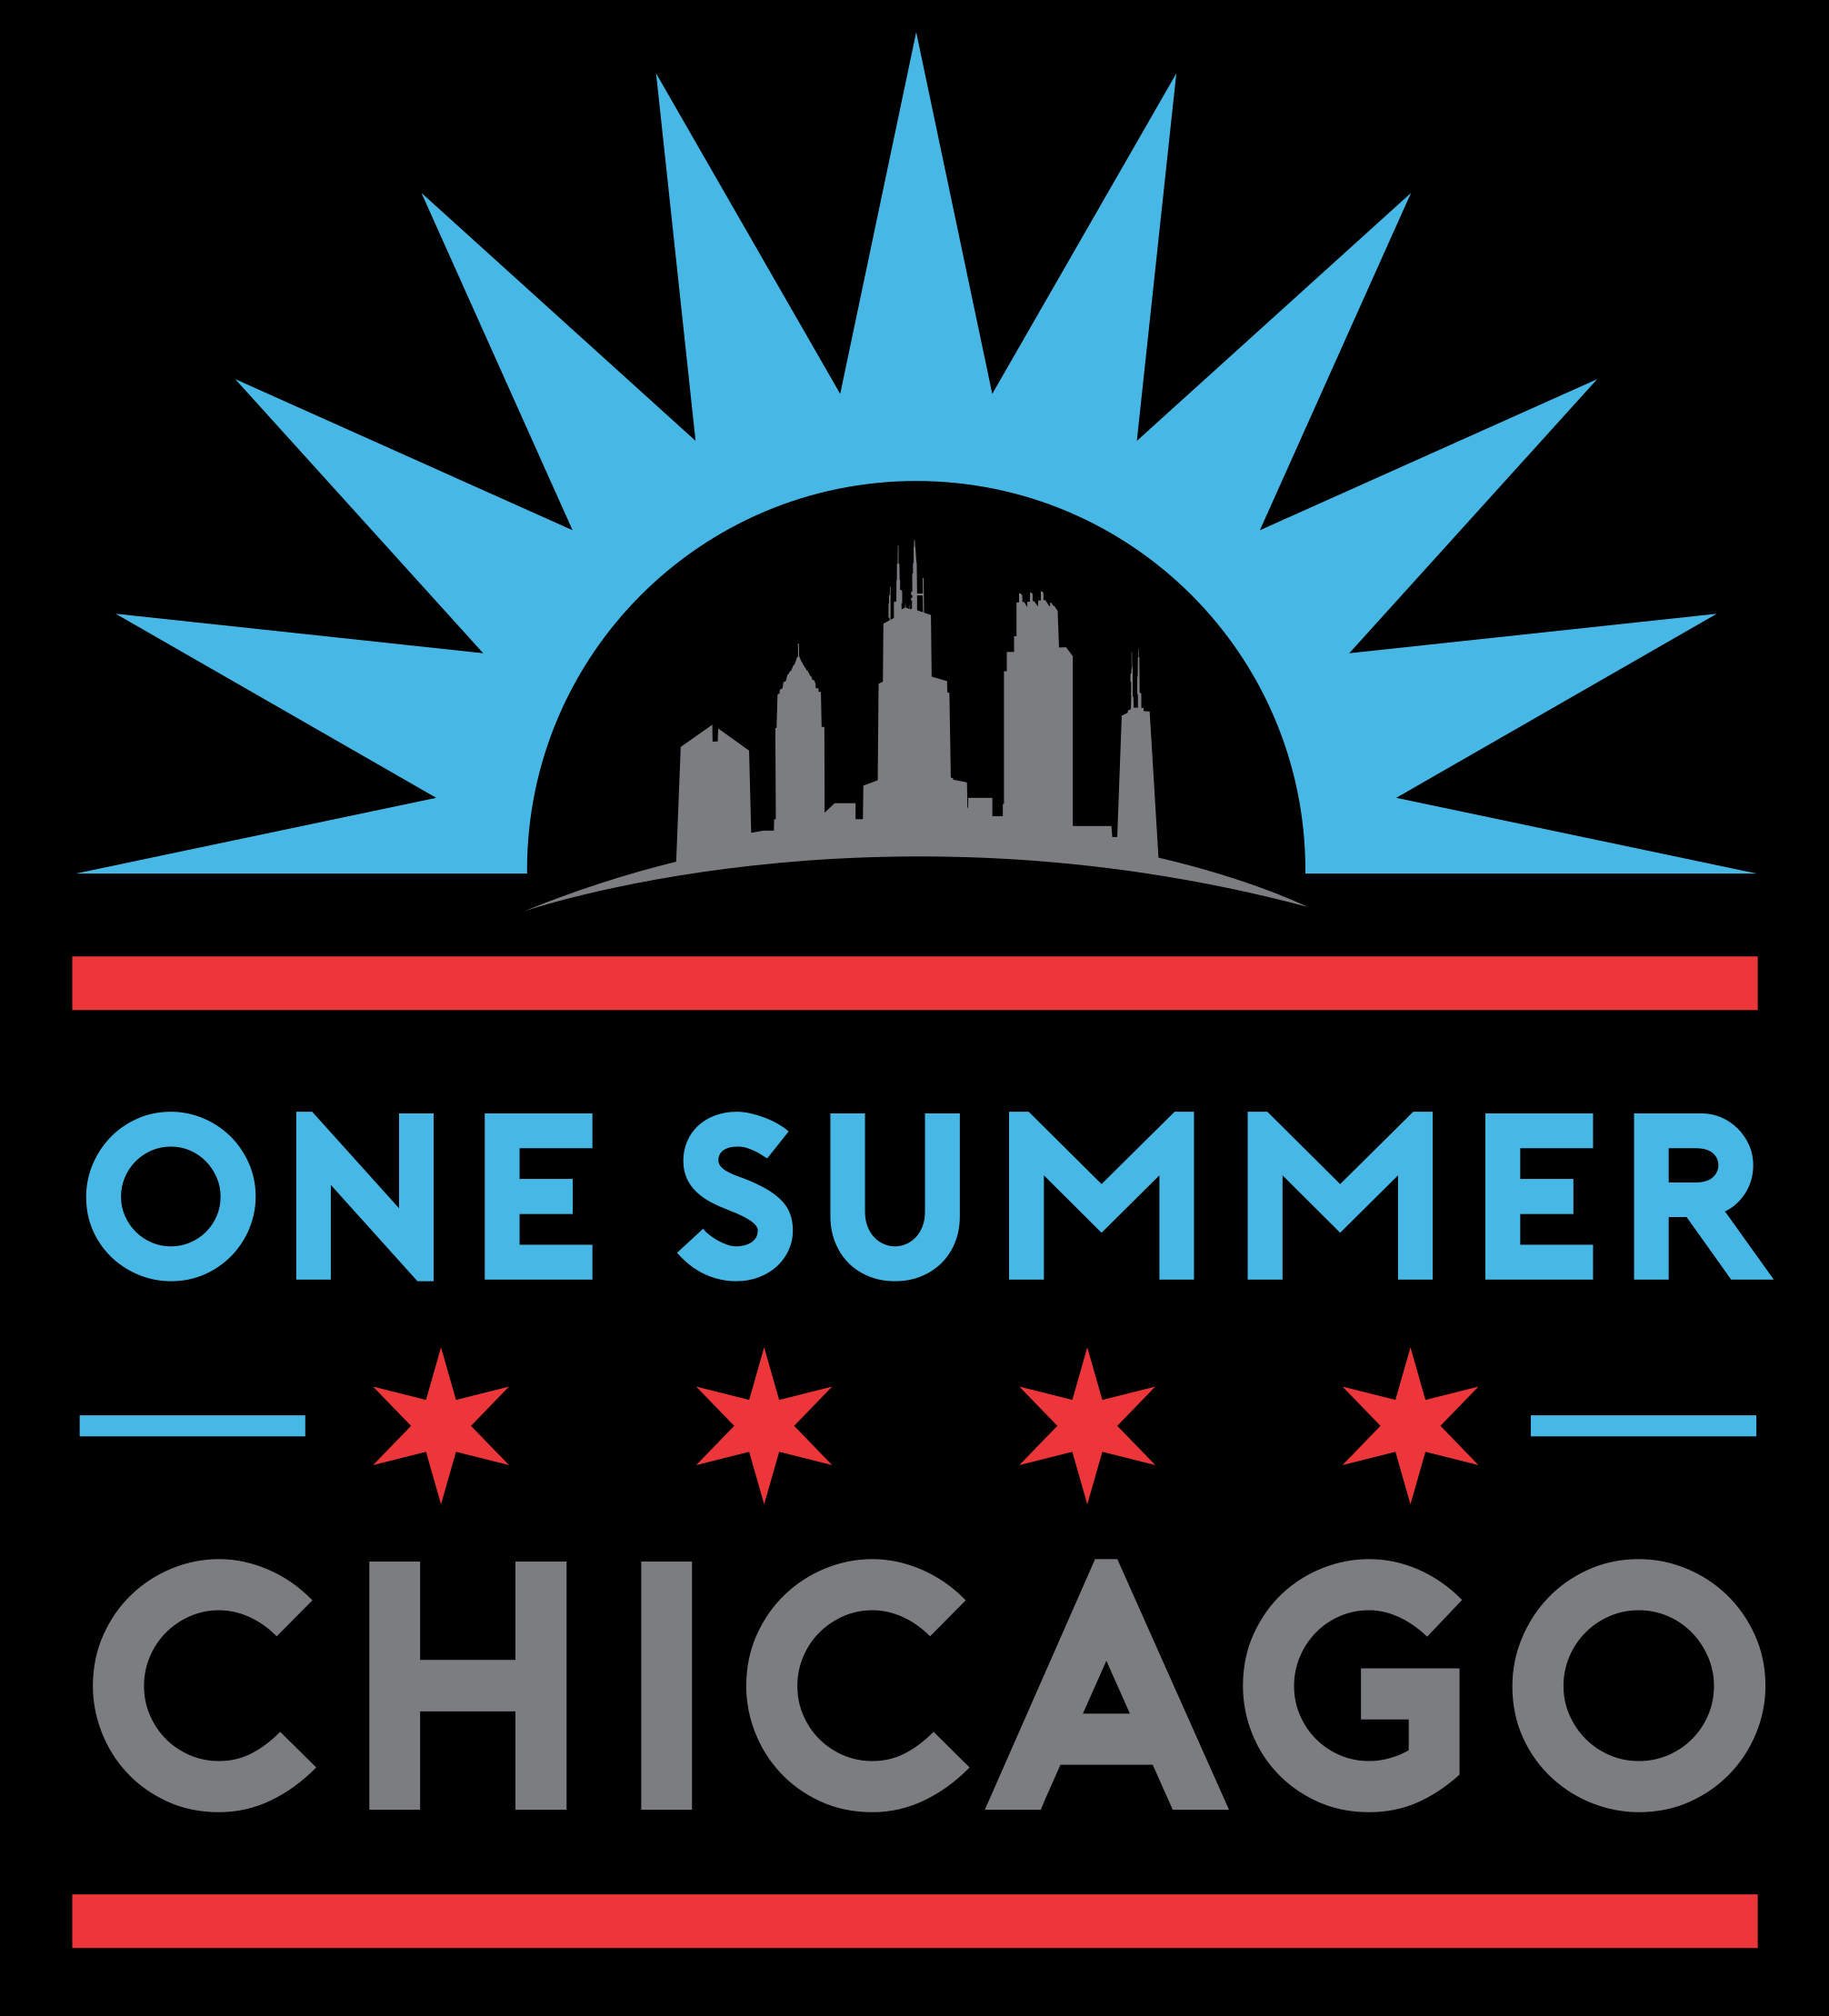 City of Chicago One Summer Youth Job Program